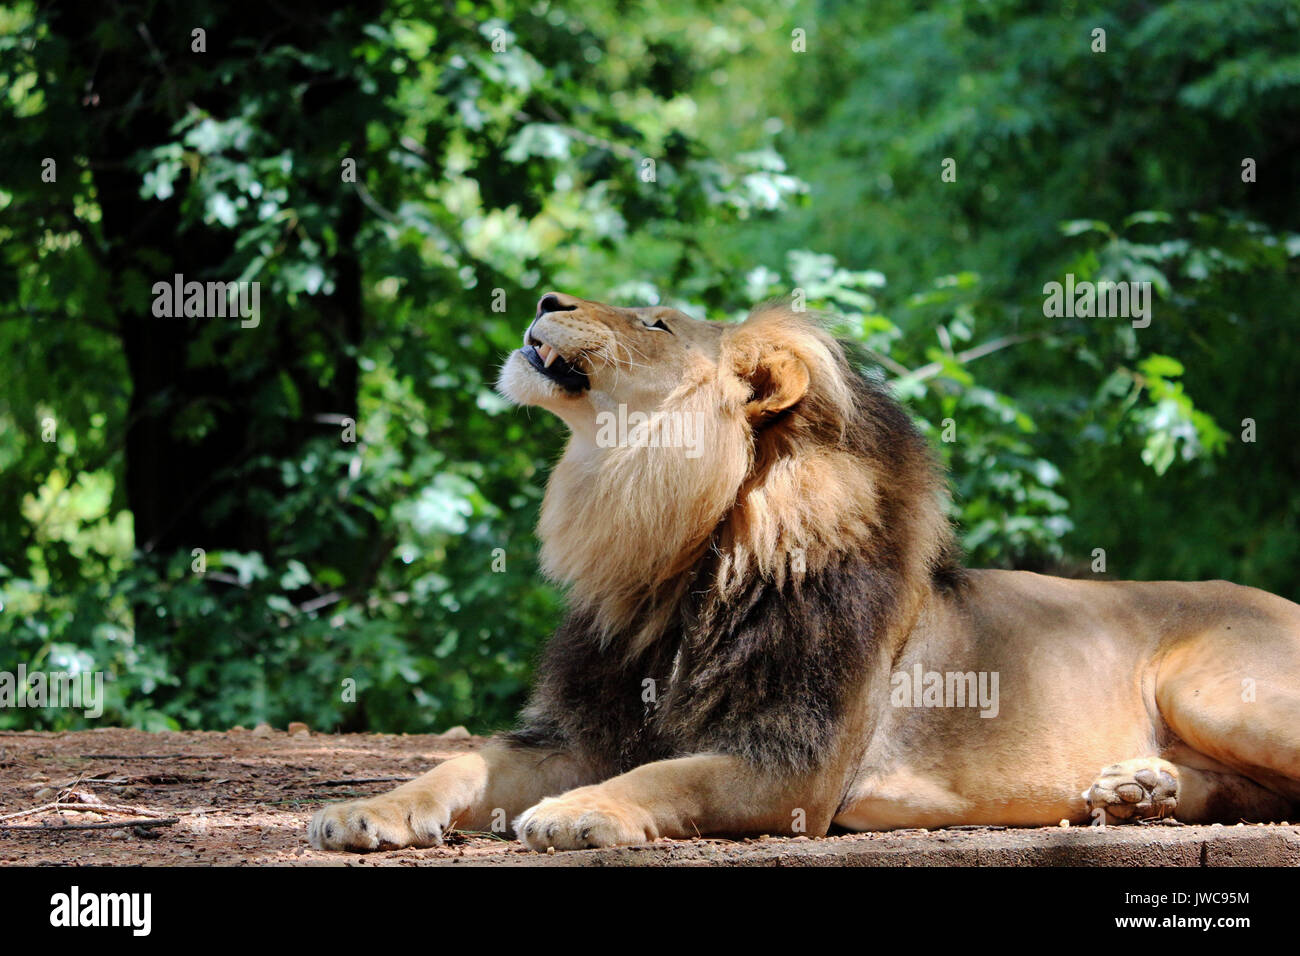 A Lion Relaxing in his Habitat with A Leafy Green Background. - Stock Image